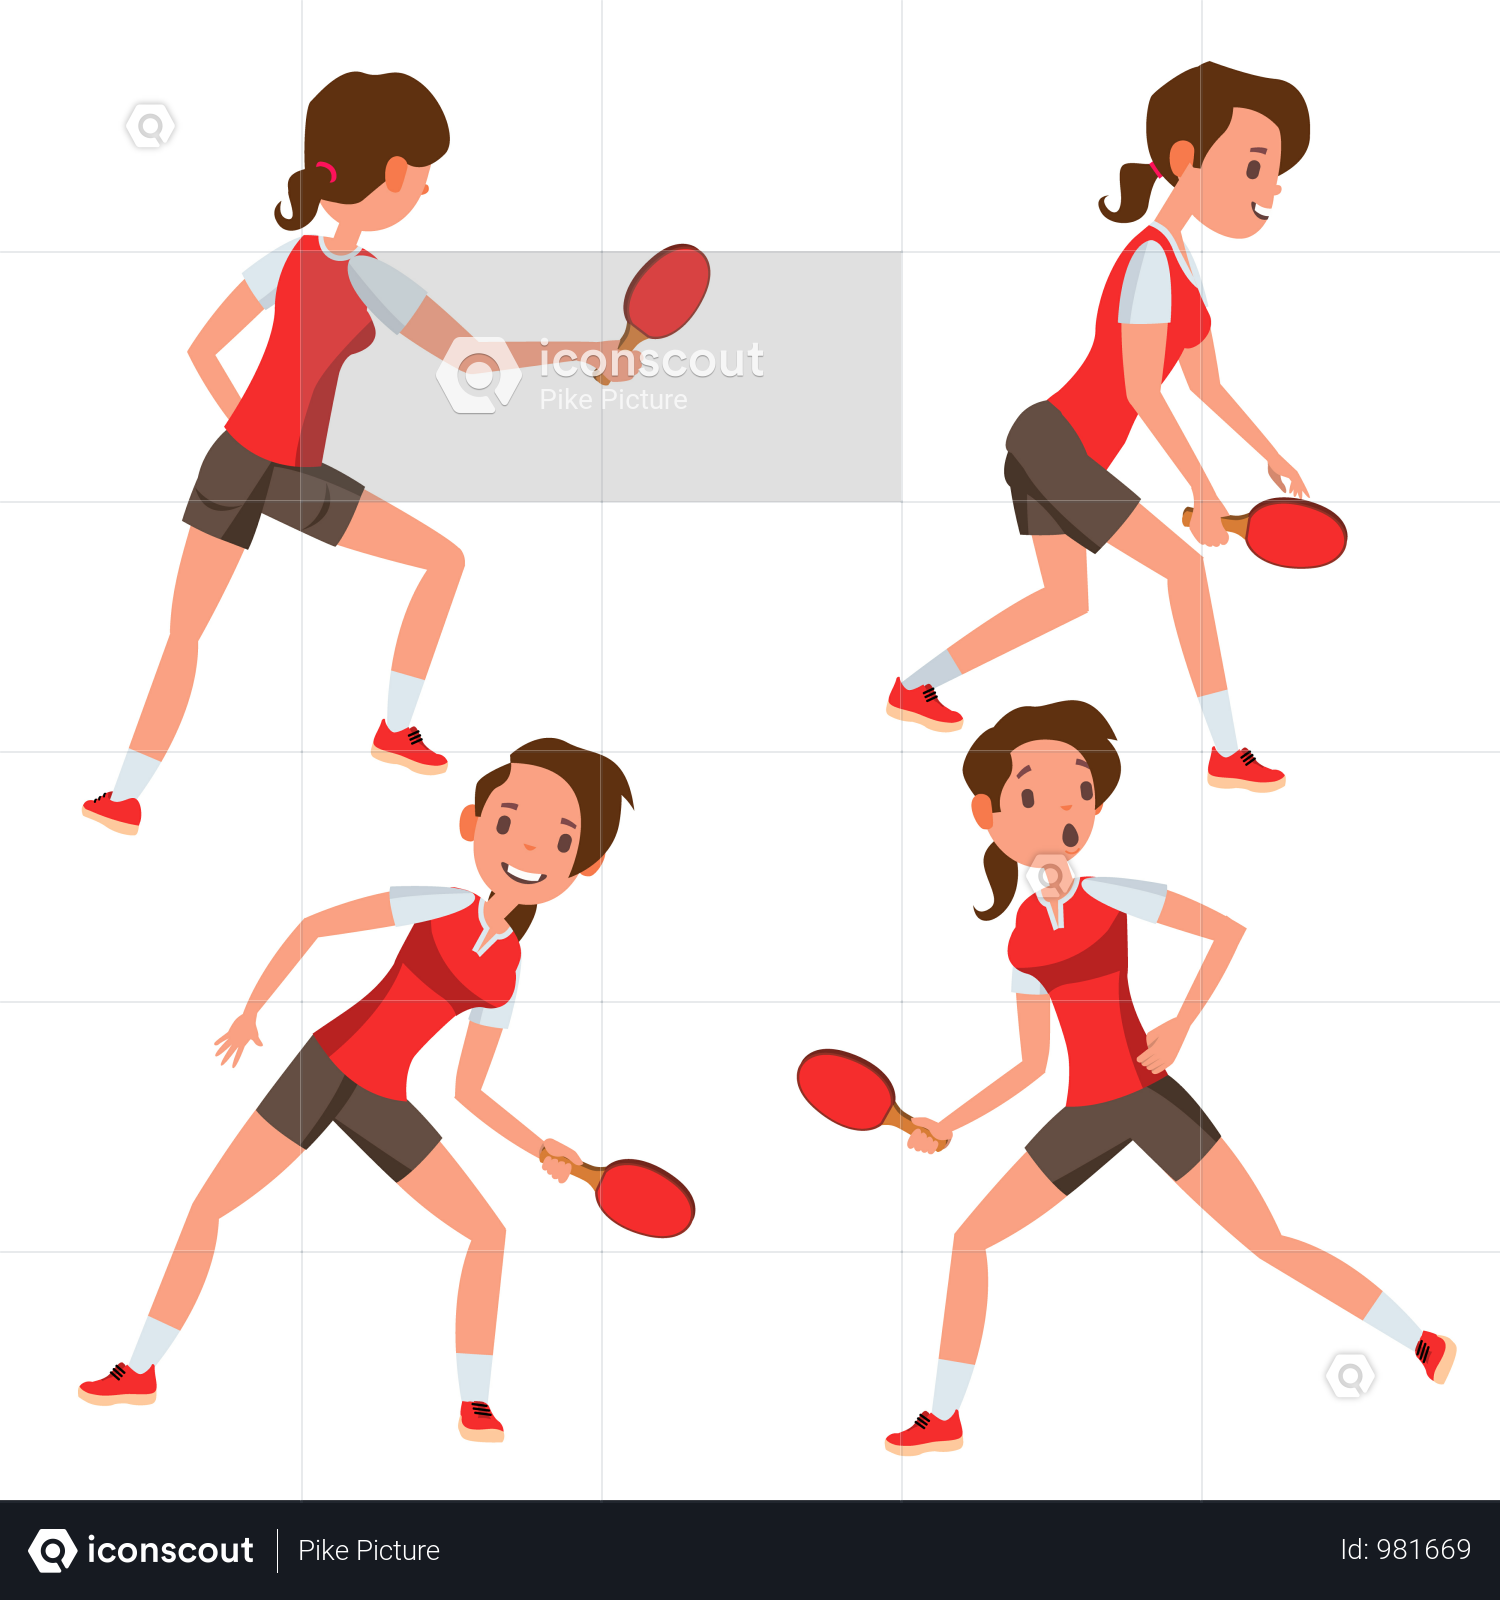 Premium Table Tennis Female Player With Playing Gesture Illustration Download In Png Vector Format In 2020 Table Tennis Tennis Players Female Handball Players